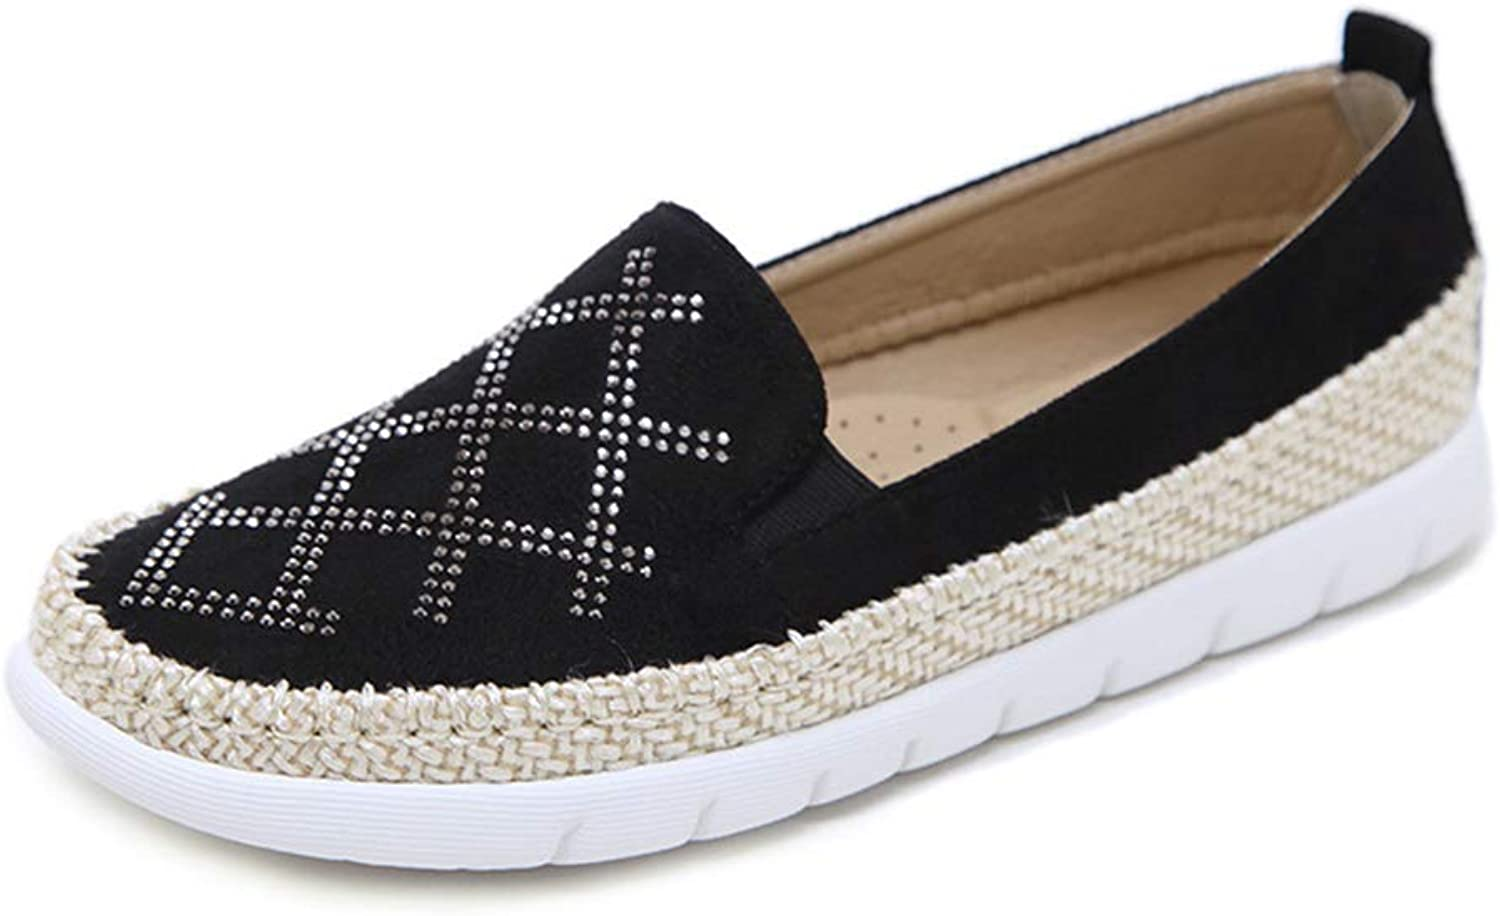 Pophight Casual Loafers Women Rhinestone Hemp Rope Round Toe Flats Black Red Big Size Loafers Fashion Ladies shoes